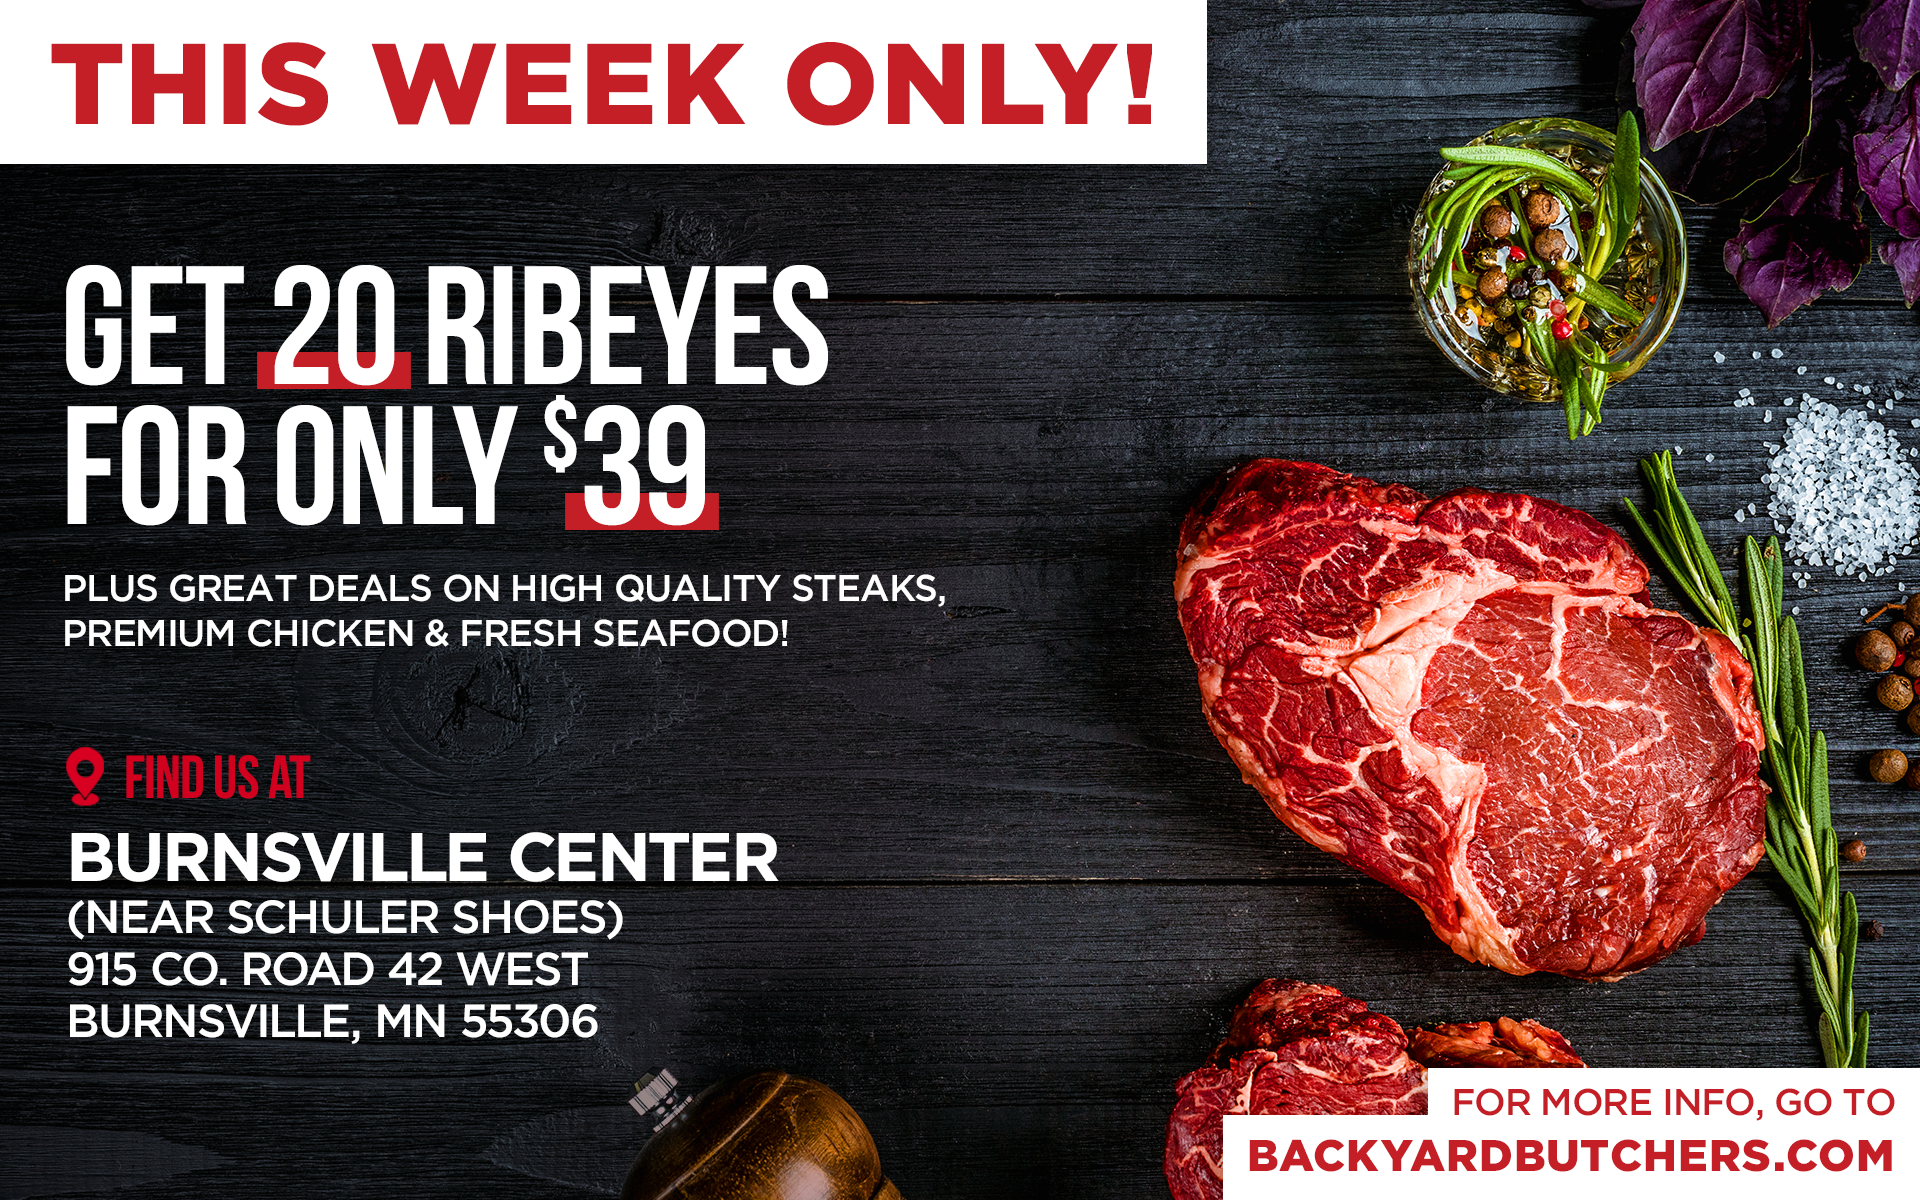 ribeye agains black background with herbs and information on the sale.